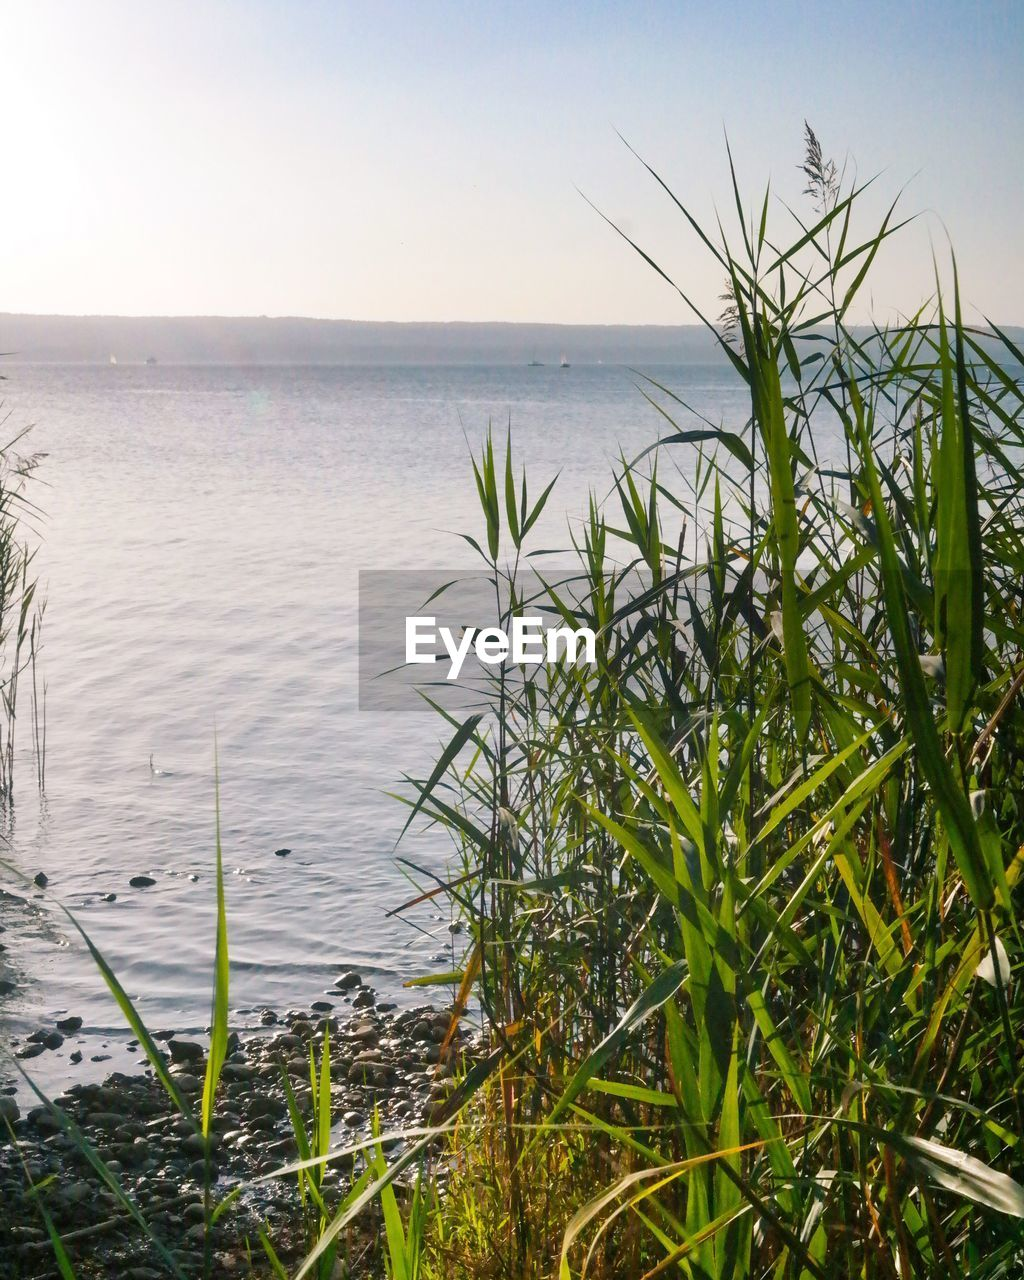 water, sea, nature, growth, horizon over water, beauty in nature, tranquility, plant, tranquil scene, scenics, outdoors, grass, no people, sky, day, clear sky, foreground, close-up